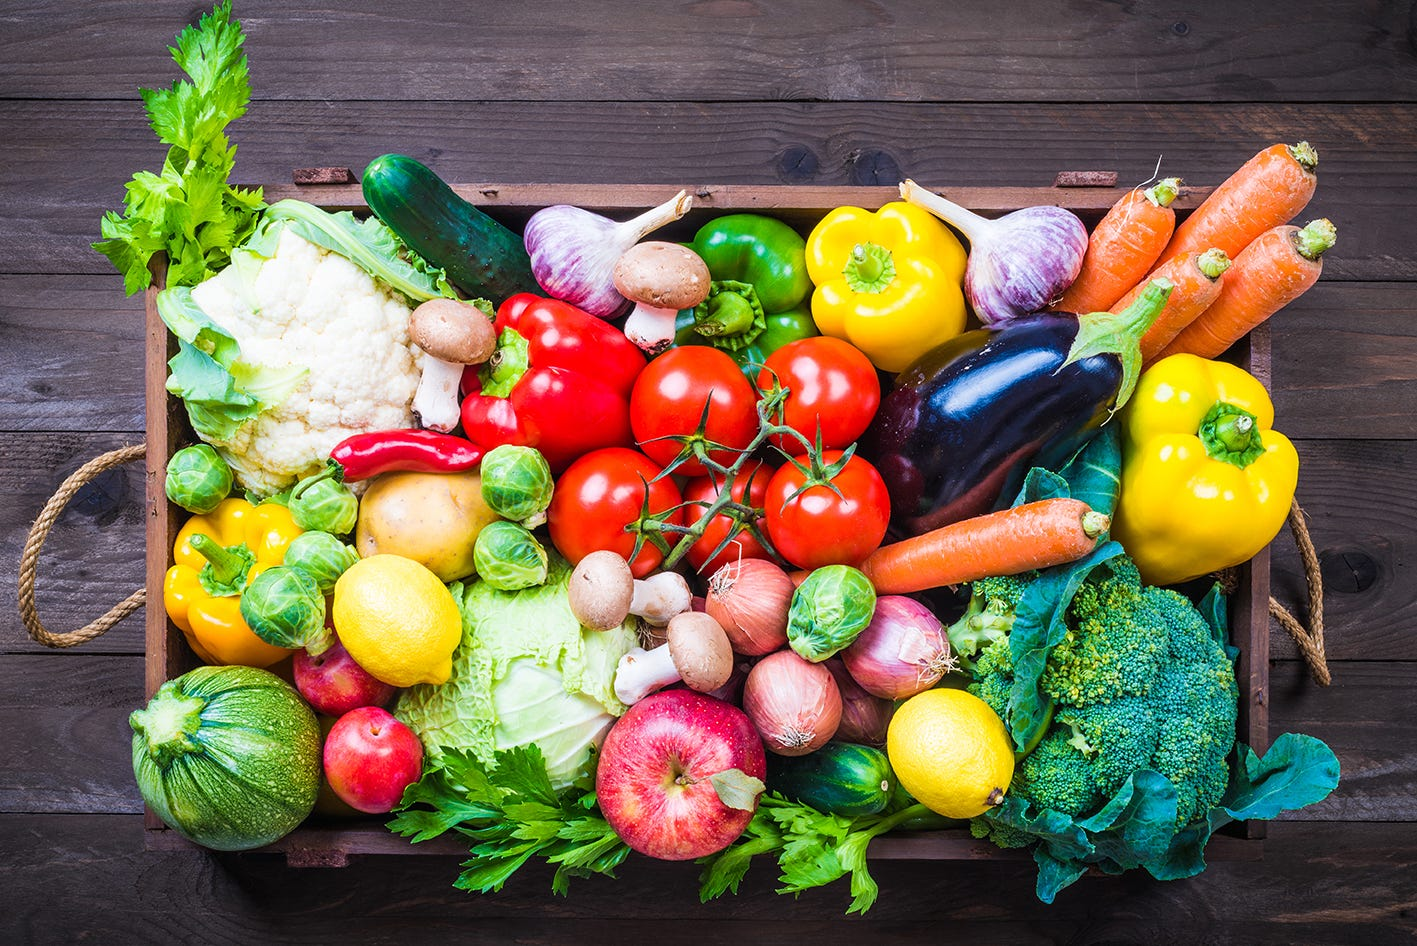 Organic fruit and vegetables in a box